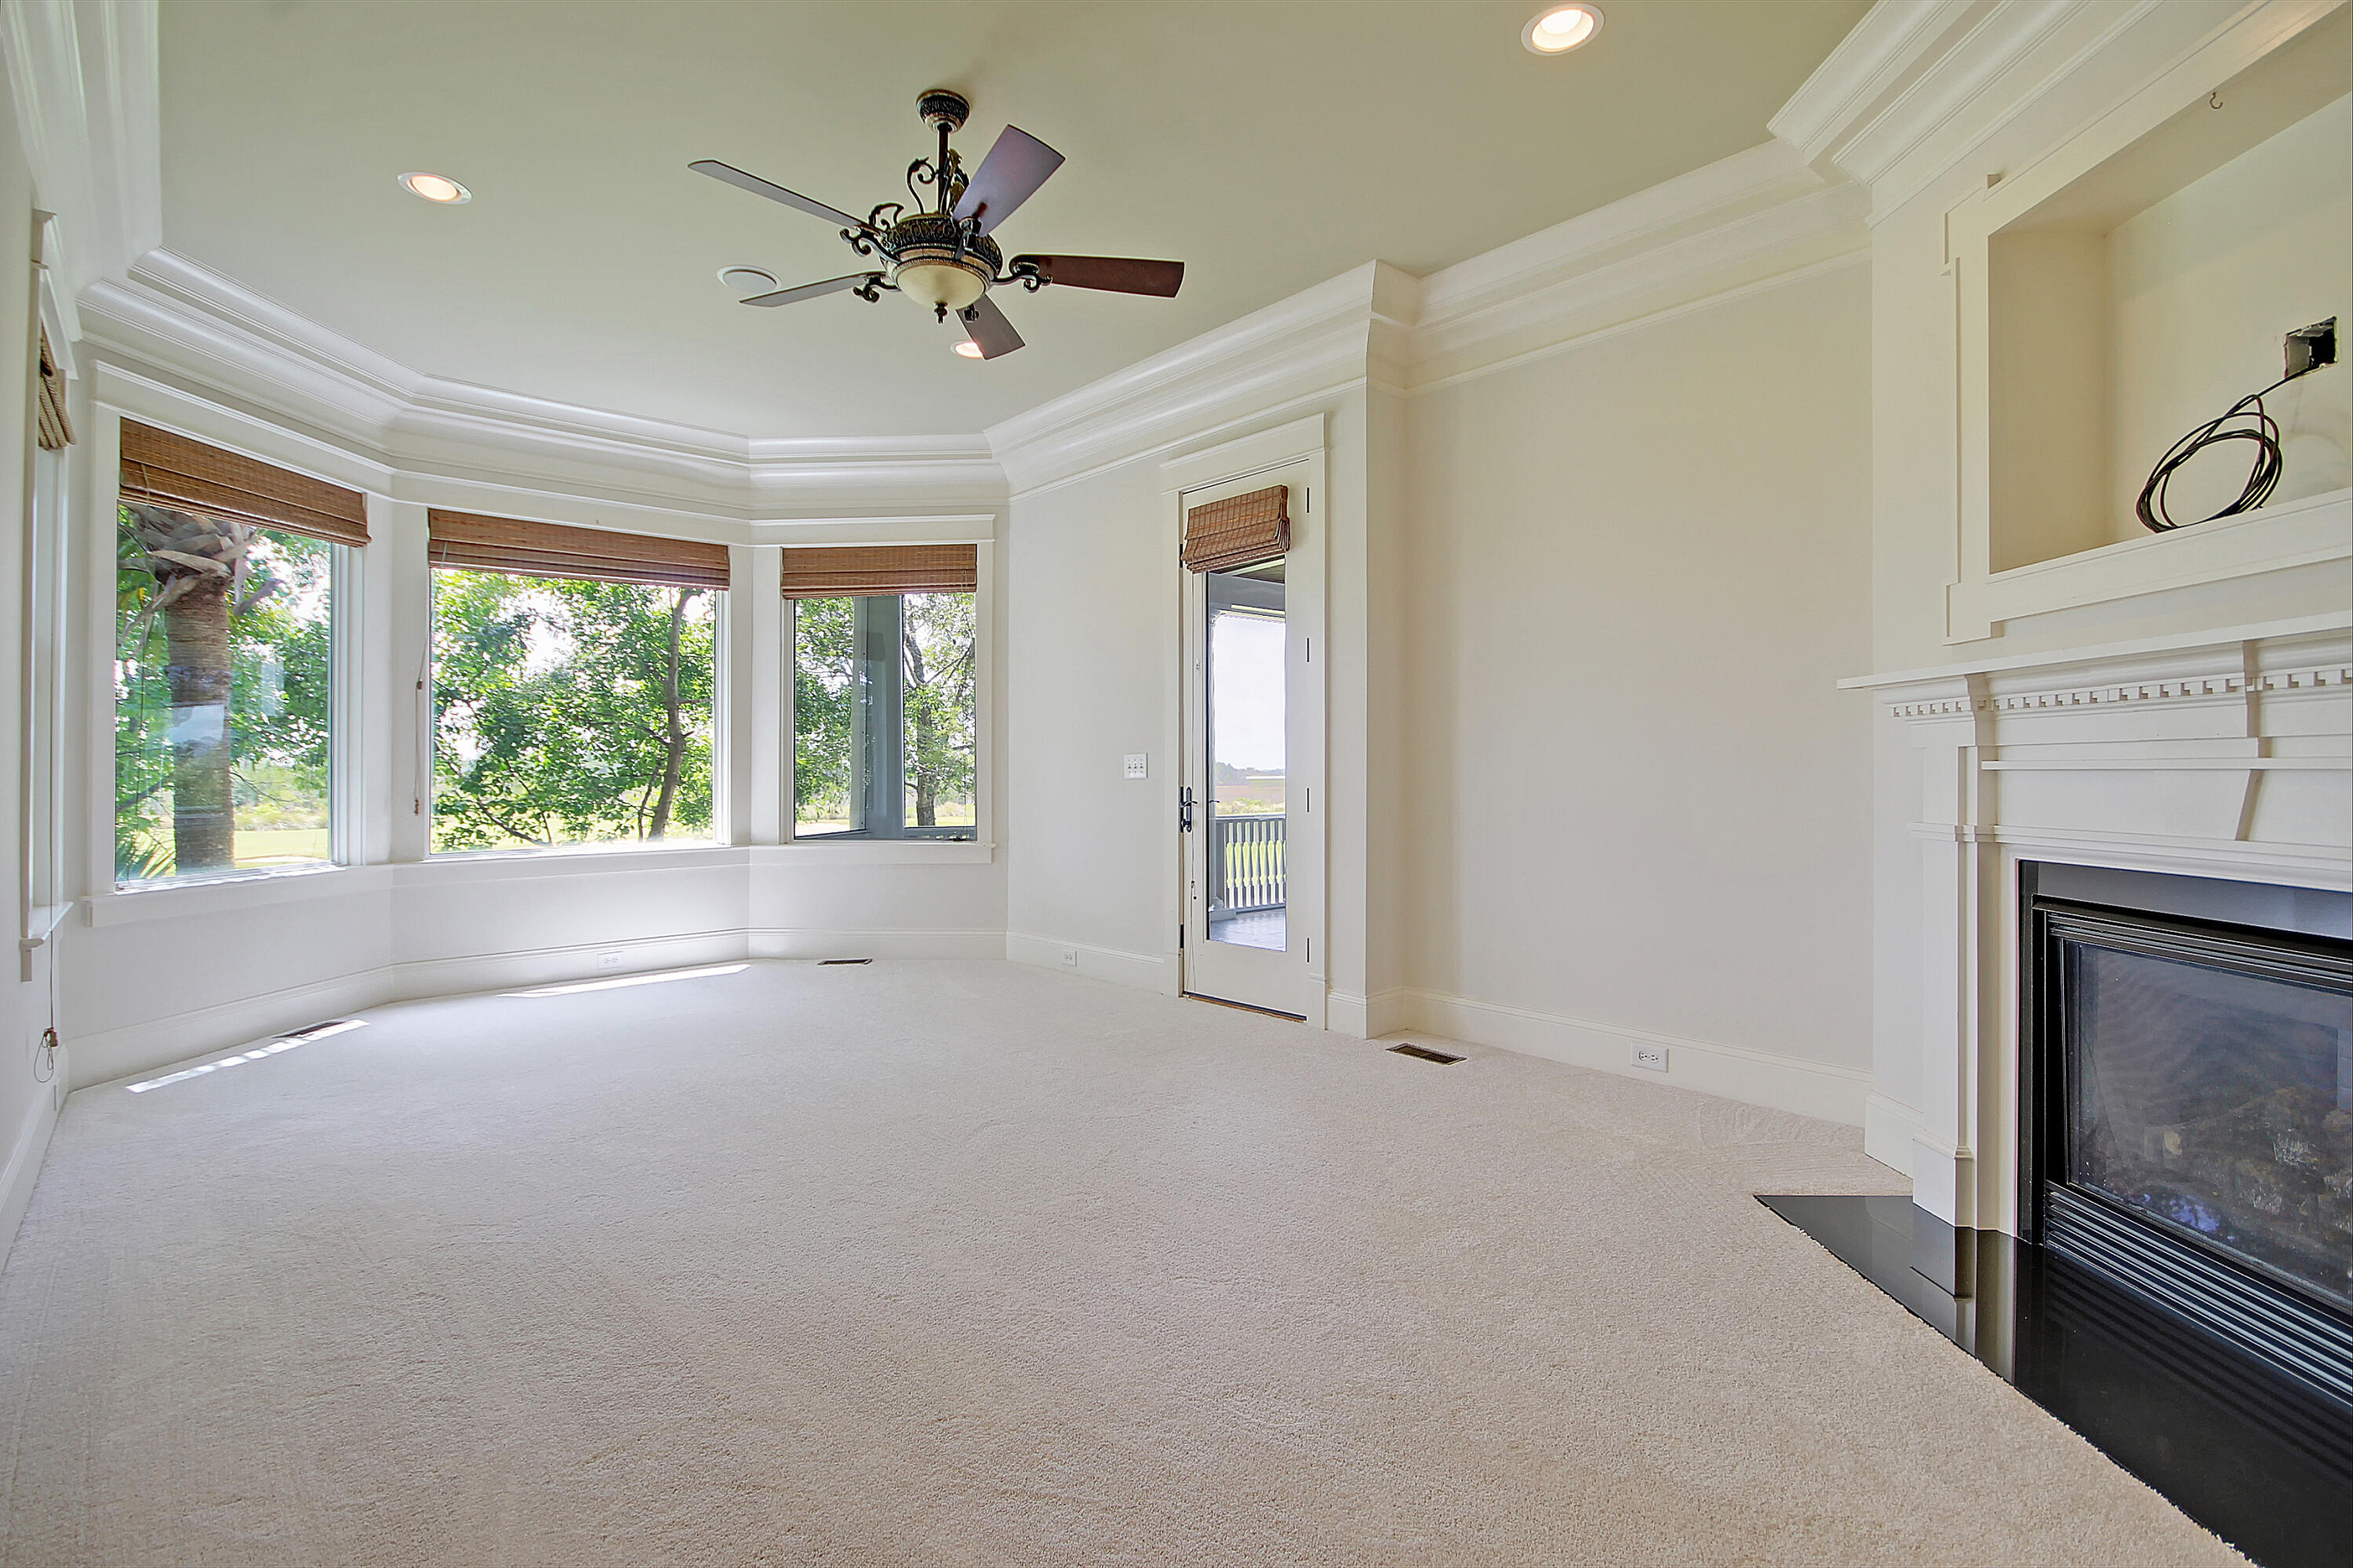 Rivertowne Country Club Homes For Sale - 1632 Rivertowne Country Club, Mount Pleasant, SC - 54